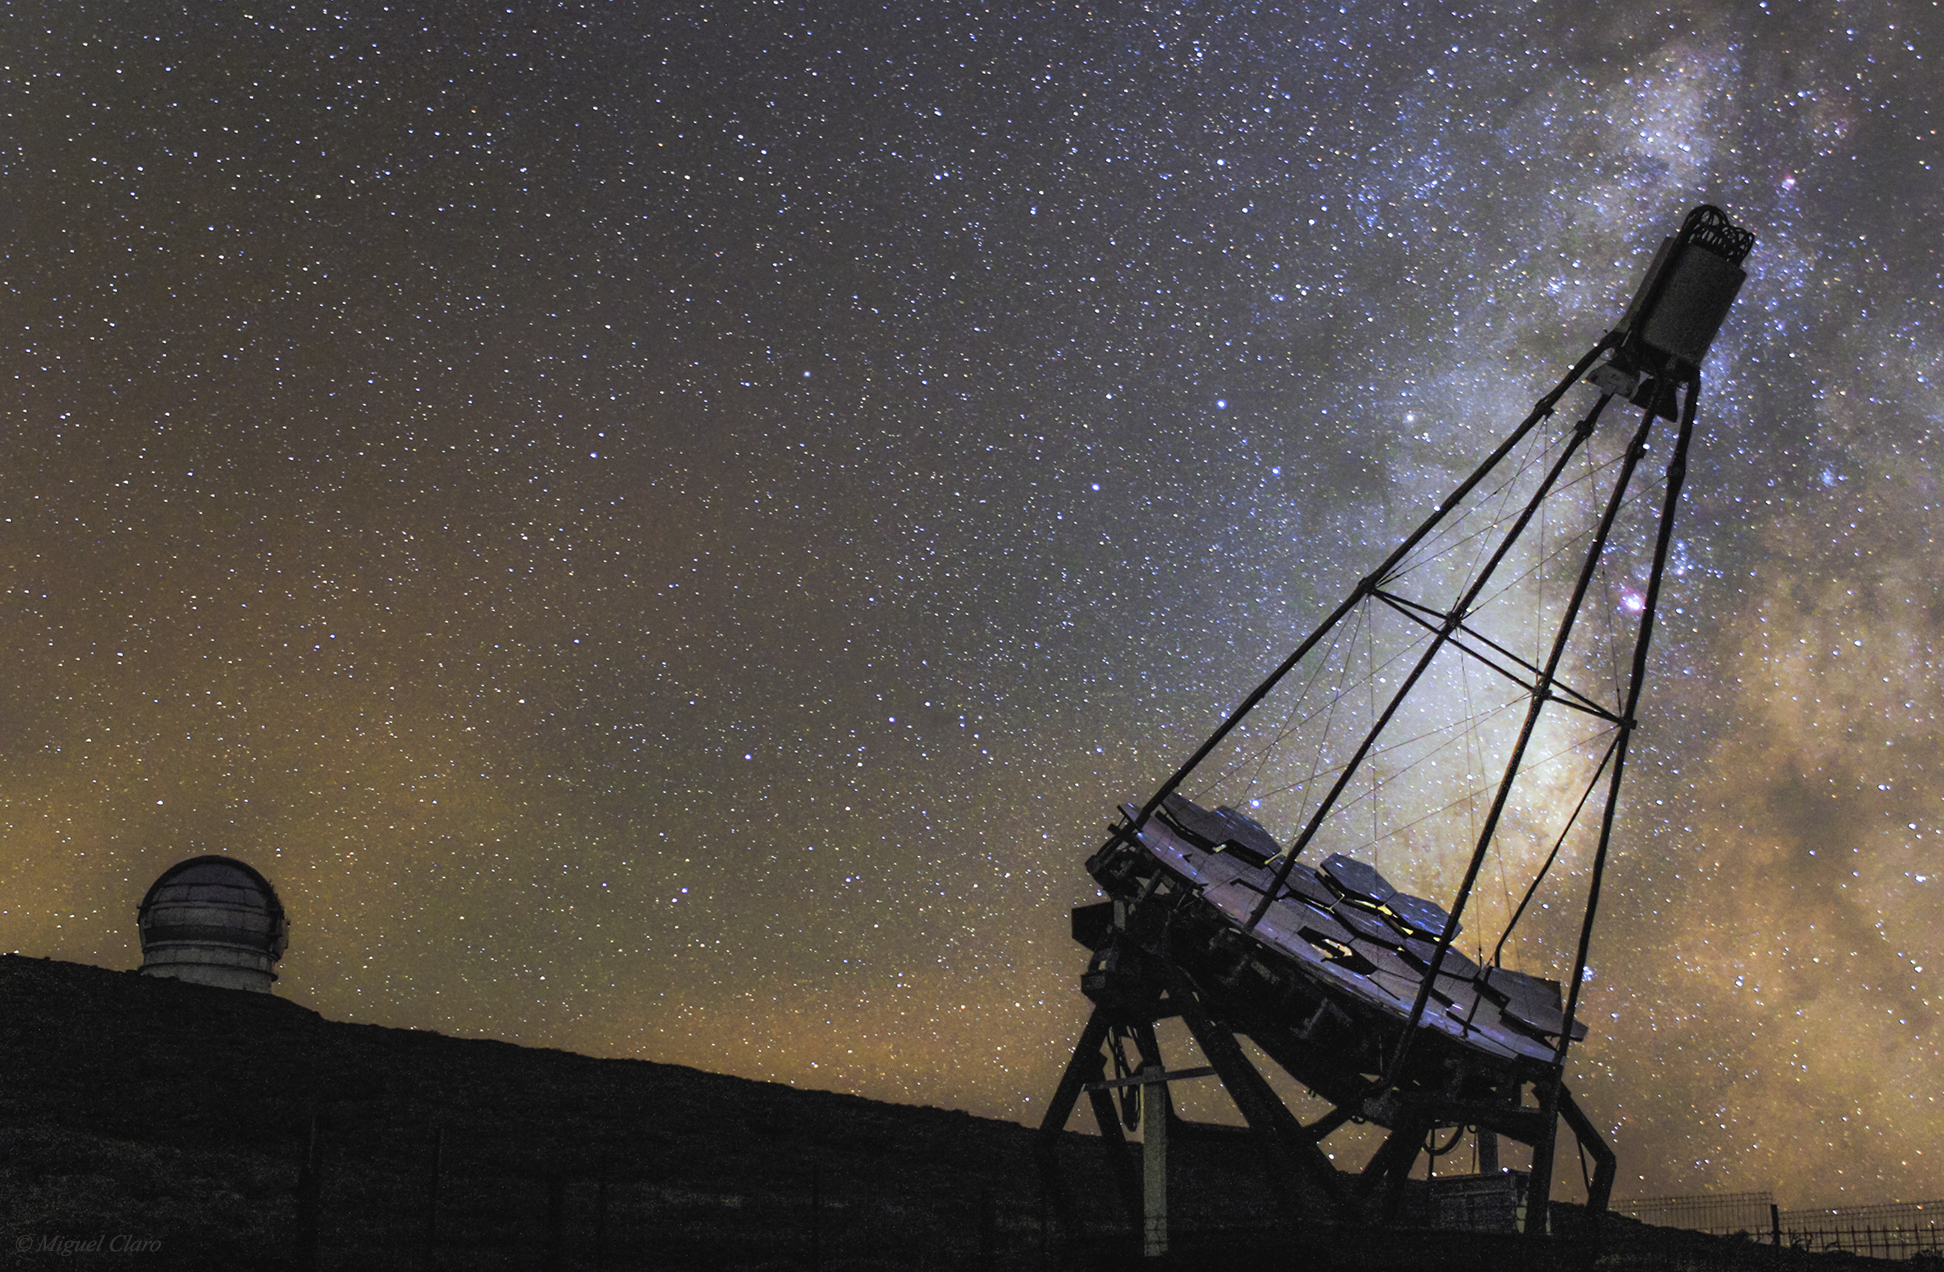 <h5>Gran Telescopio Canarias and FACT Telescope against Milky Way</h5>